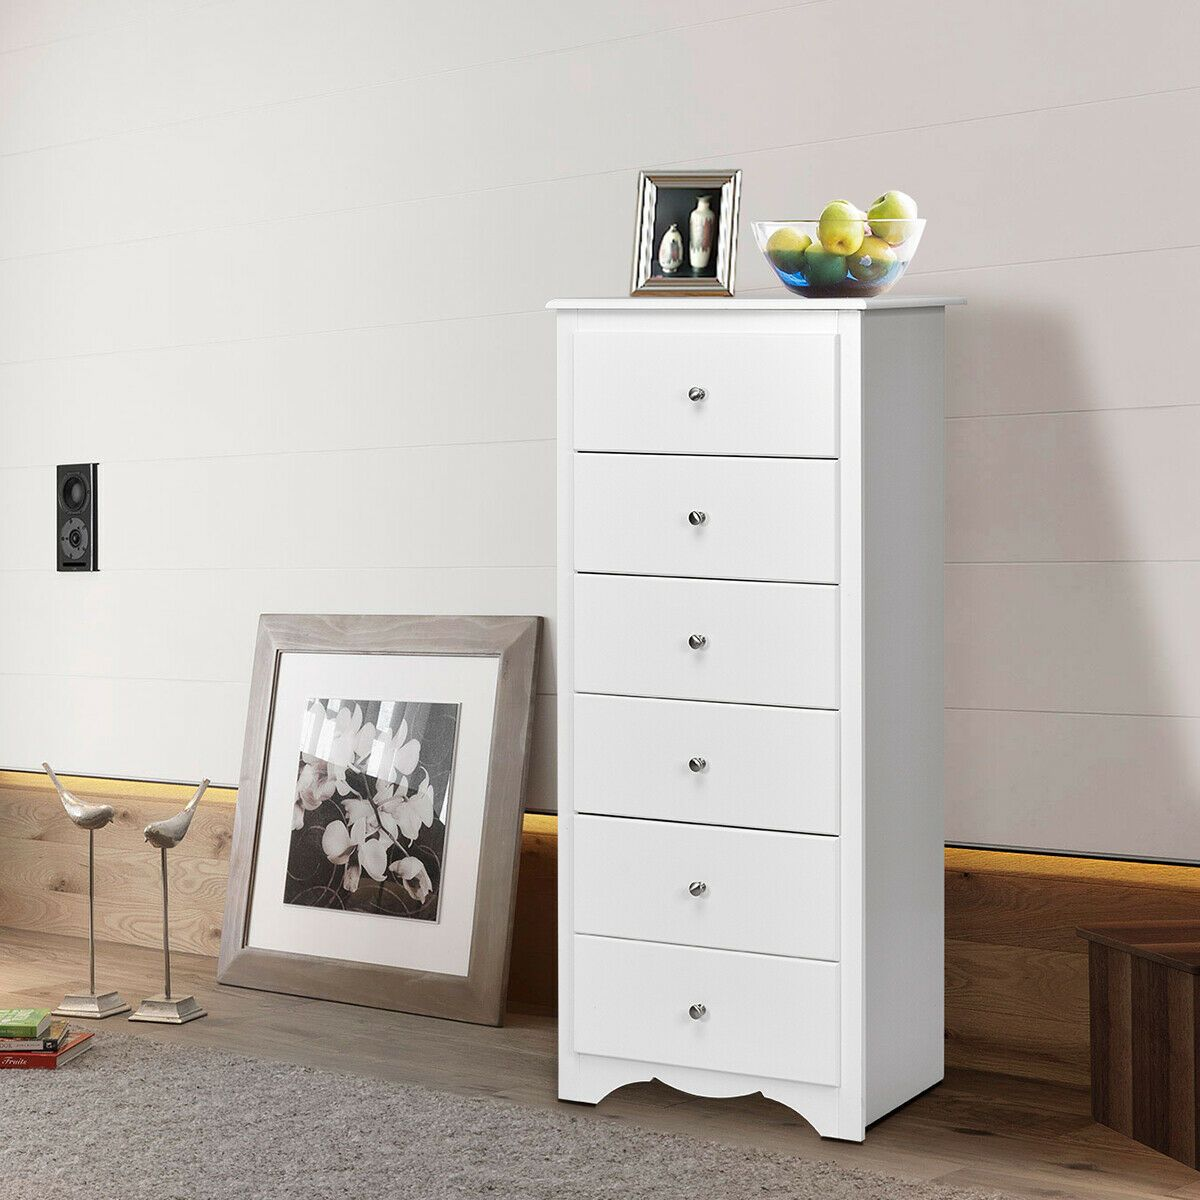 6 Drawers Chest Dresser Clothes Storage Bedroom Tall Furniture